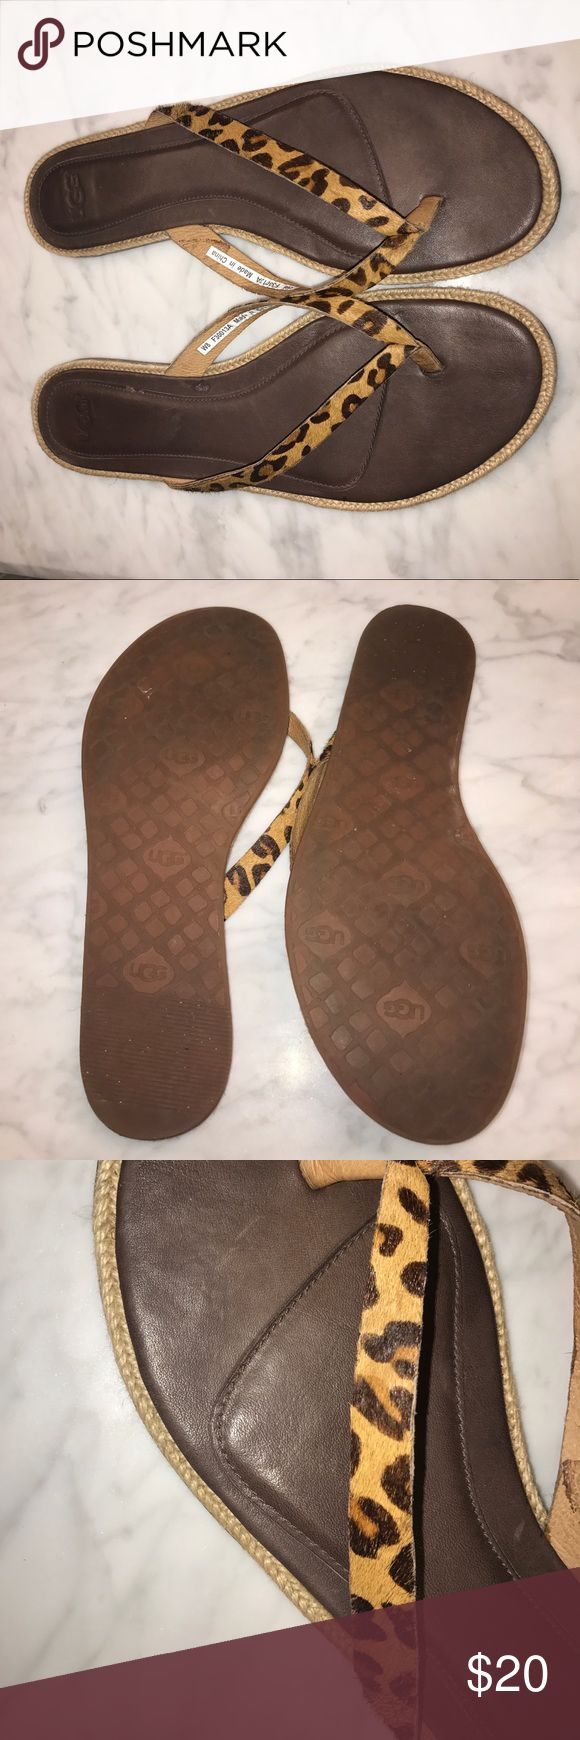 UGG Animal Print Flip Flop UGG Flip flip worn only a few times. UGG Shoes Sandals